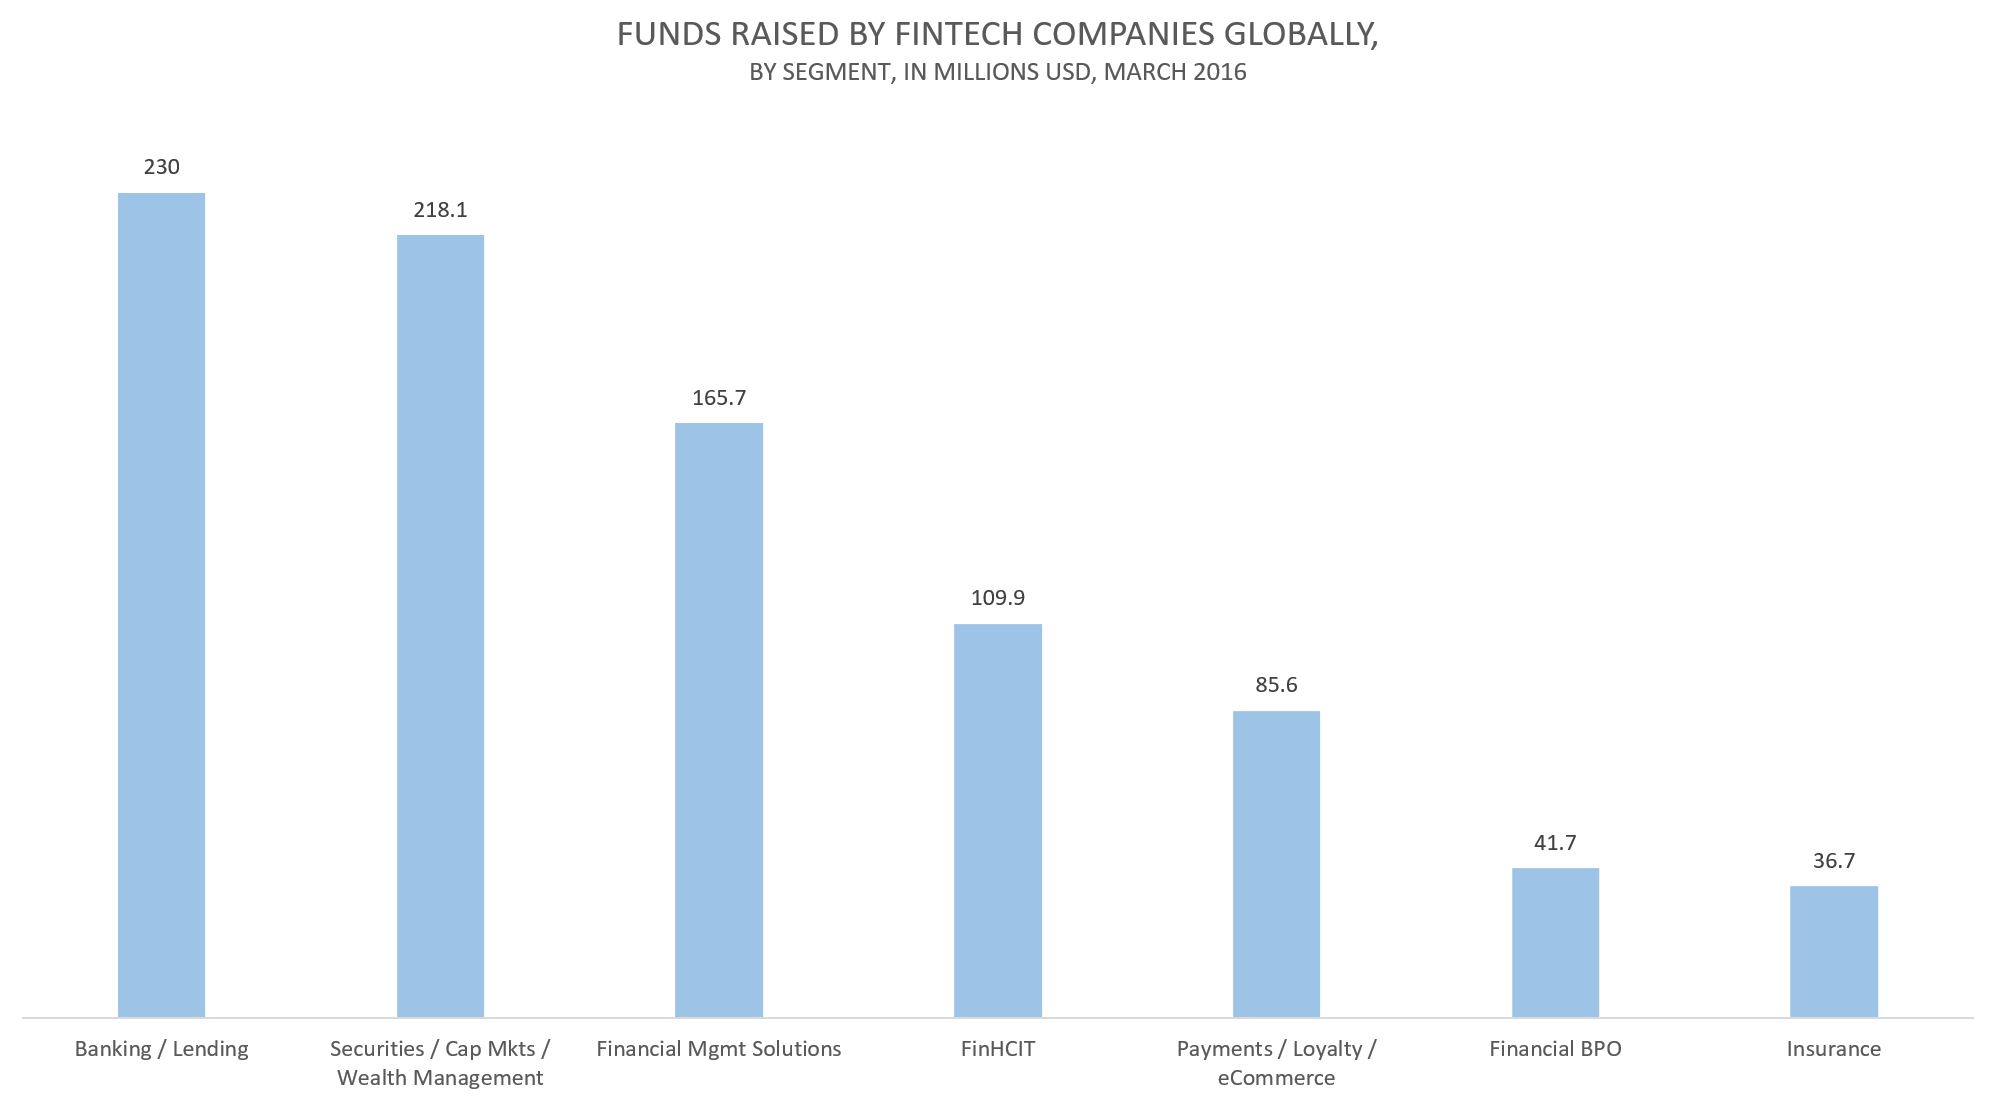 Funds raised by FinTech firms globally